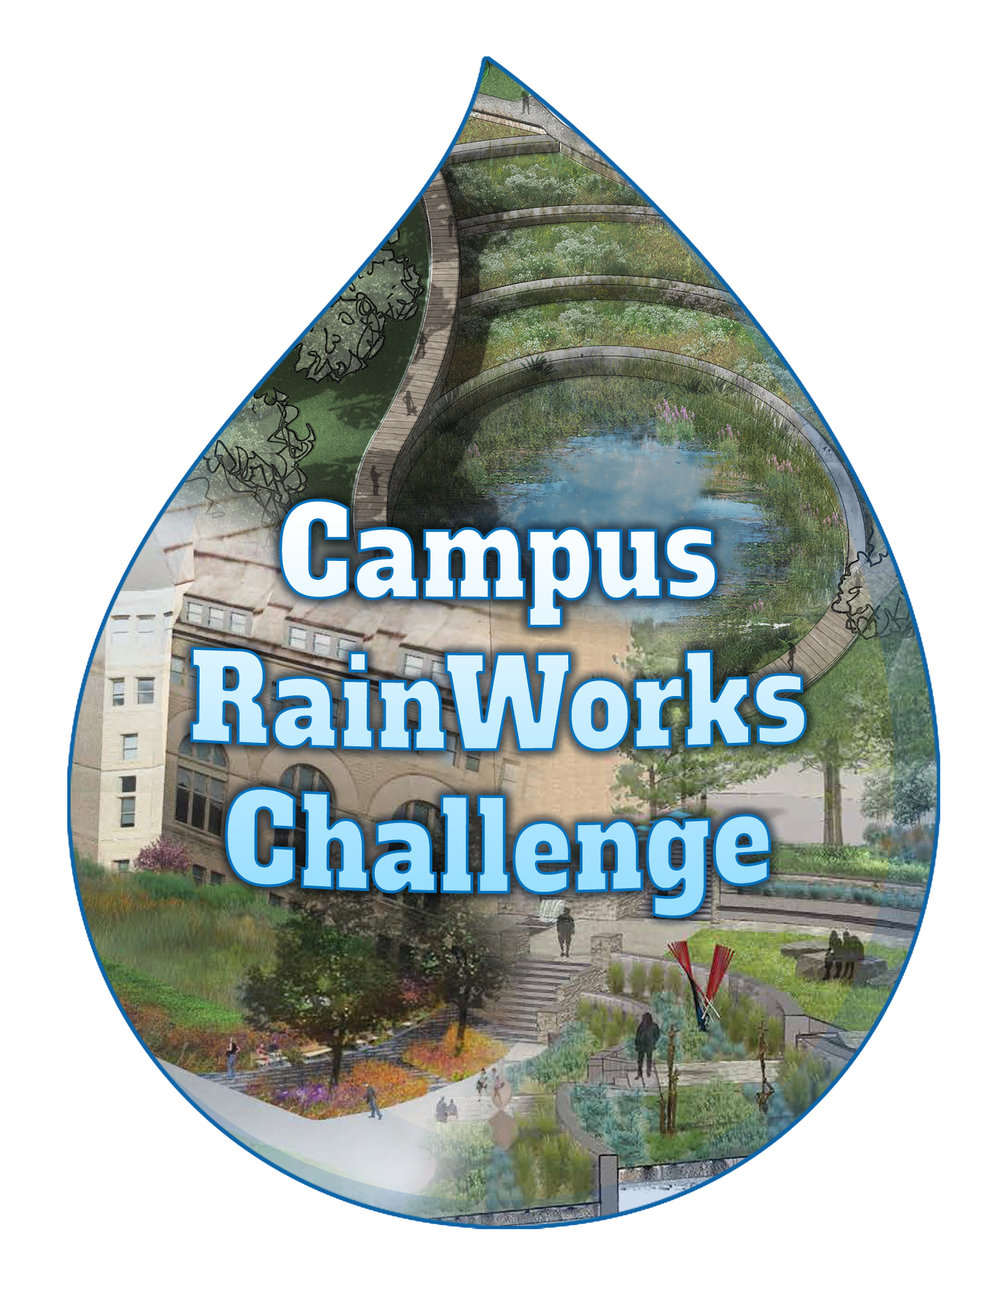 Venture Smarter in the Campus RainWorks Challenge